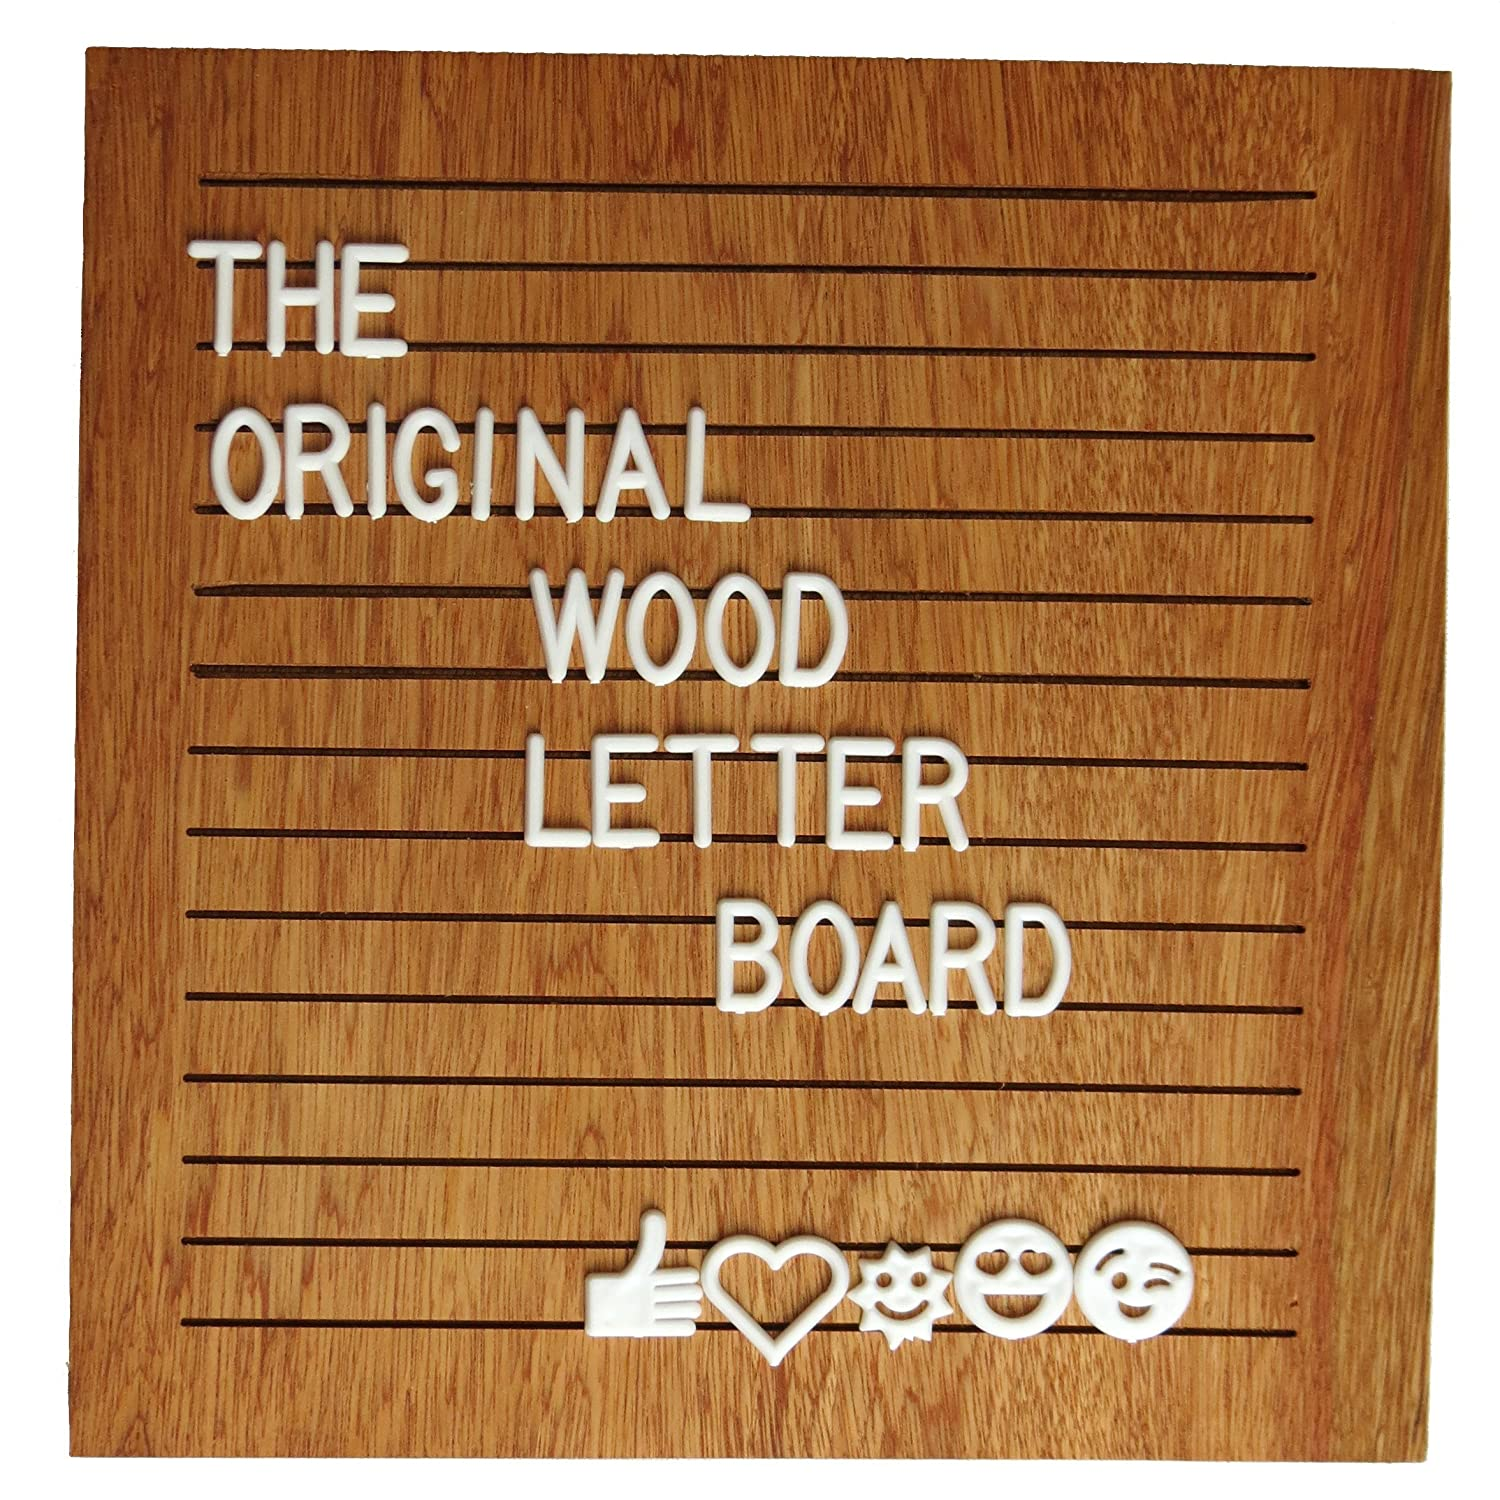 10x10 Inch Wood Letter Board with 340 White Letters Numbers and Symbols Changeable Wooden Message Board Sign with Free Scissors Black Plastic stand Canvas Bag